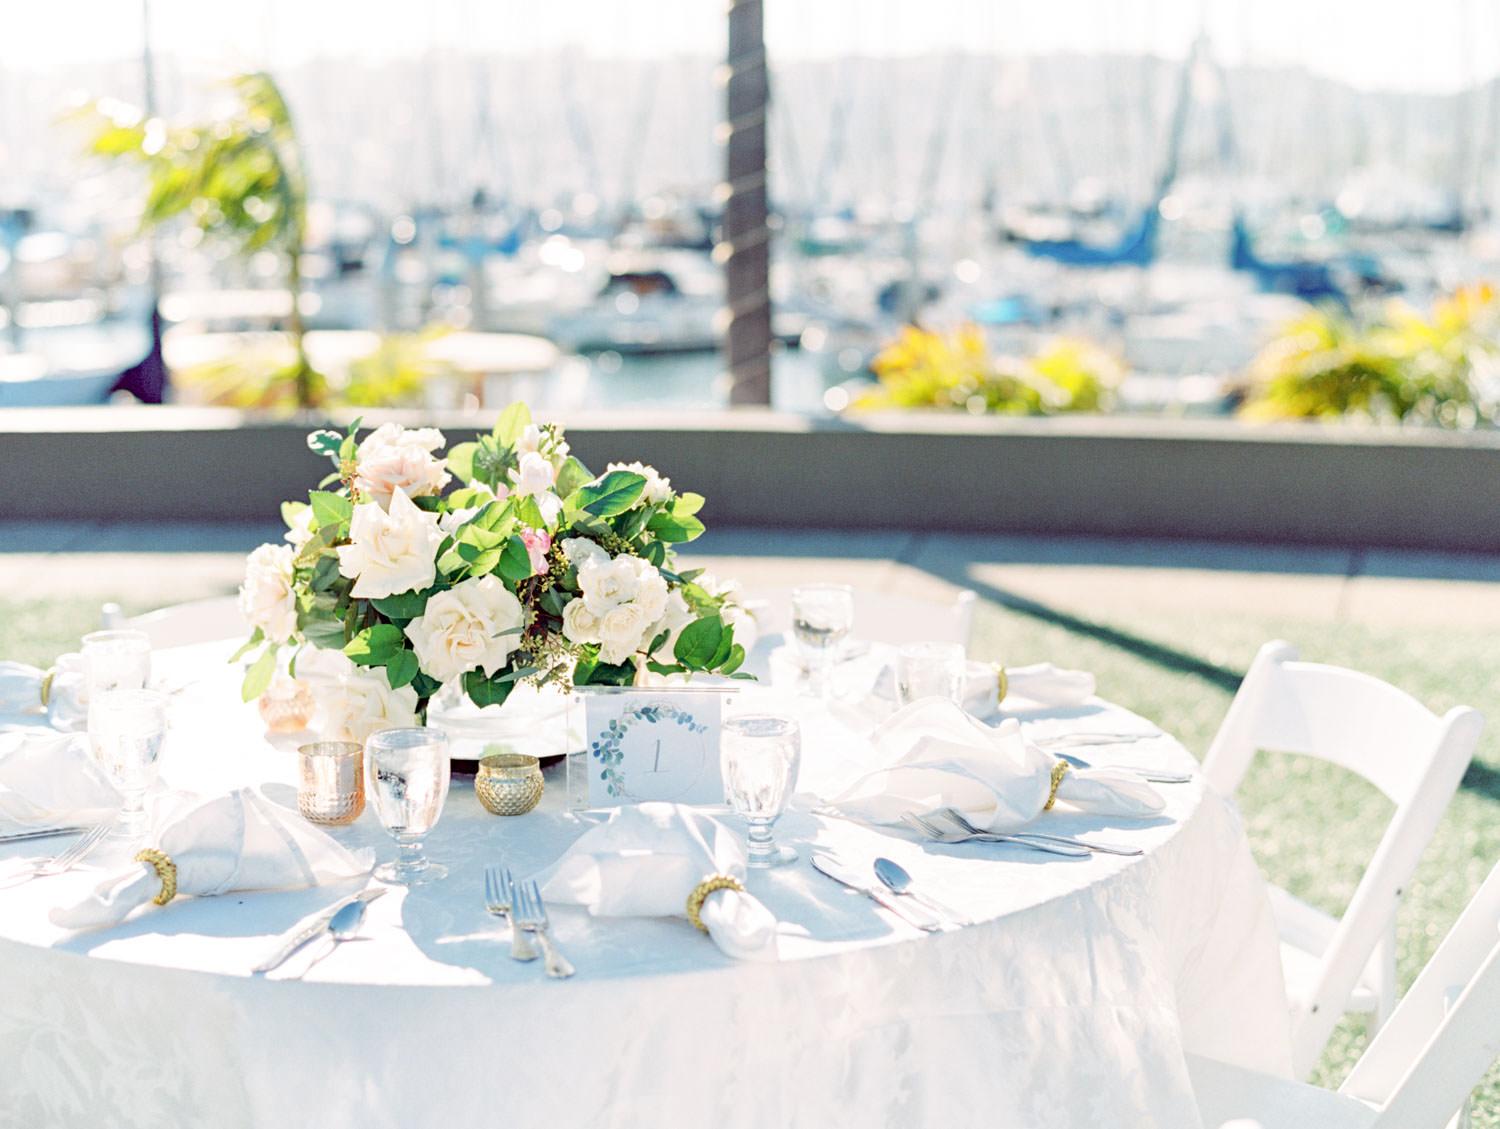 Wedding reception table with white linen and arrangement with ivory and blush roses and greenery captured on film. Wedding at Humphreys Half Moon Inn by Cavin Elizabeth Photography